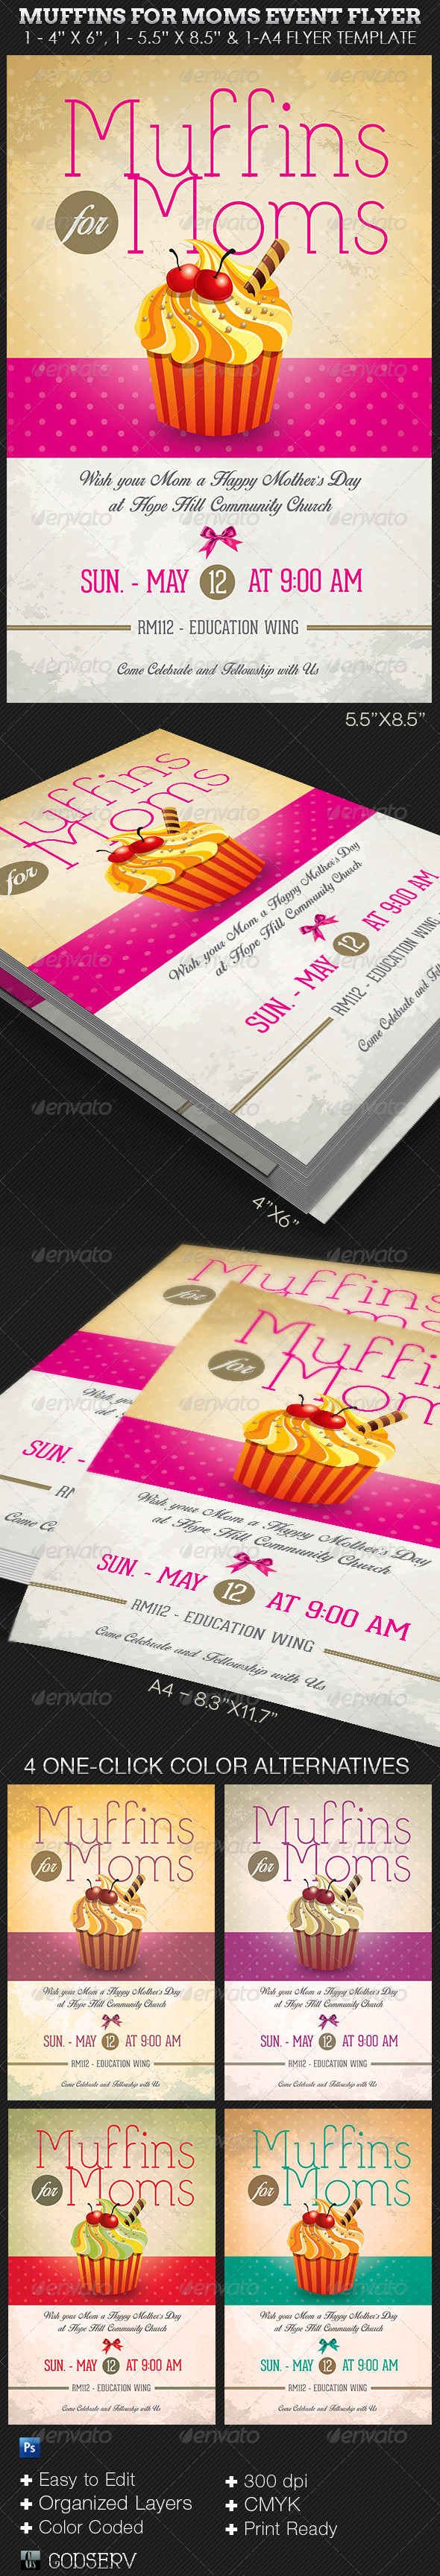 GraphicRiver Muffins for Moms Event Flyer Template 7618923